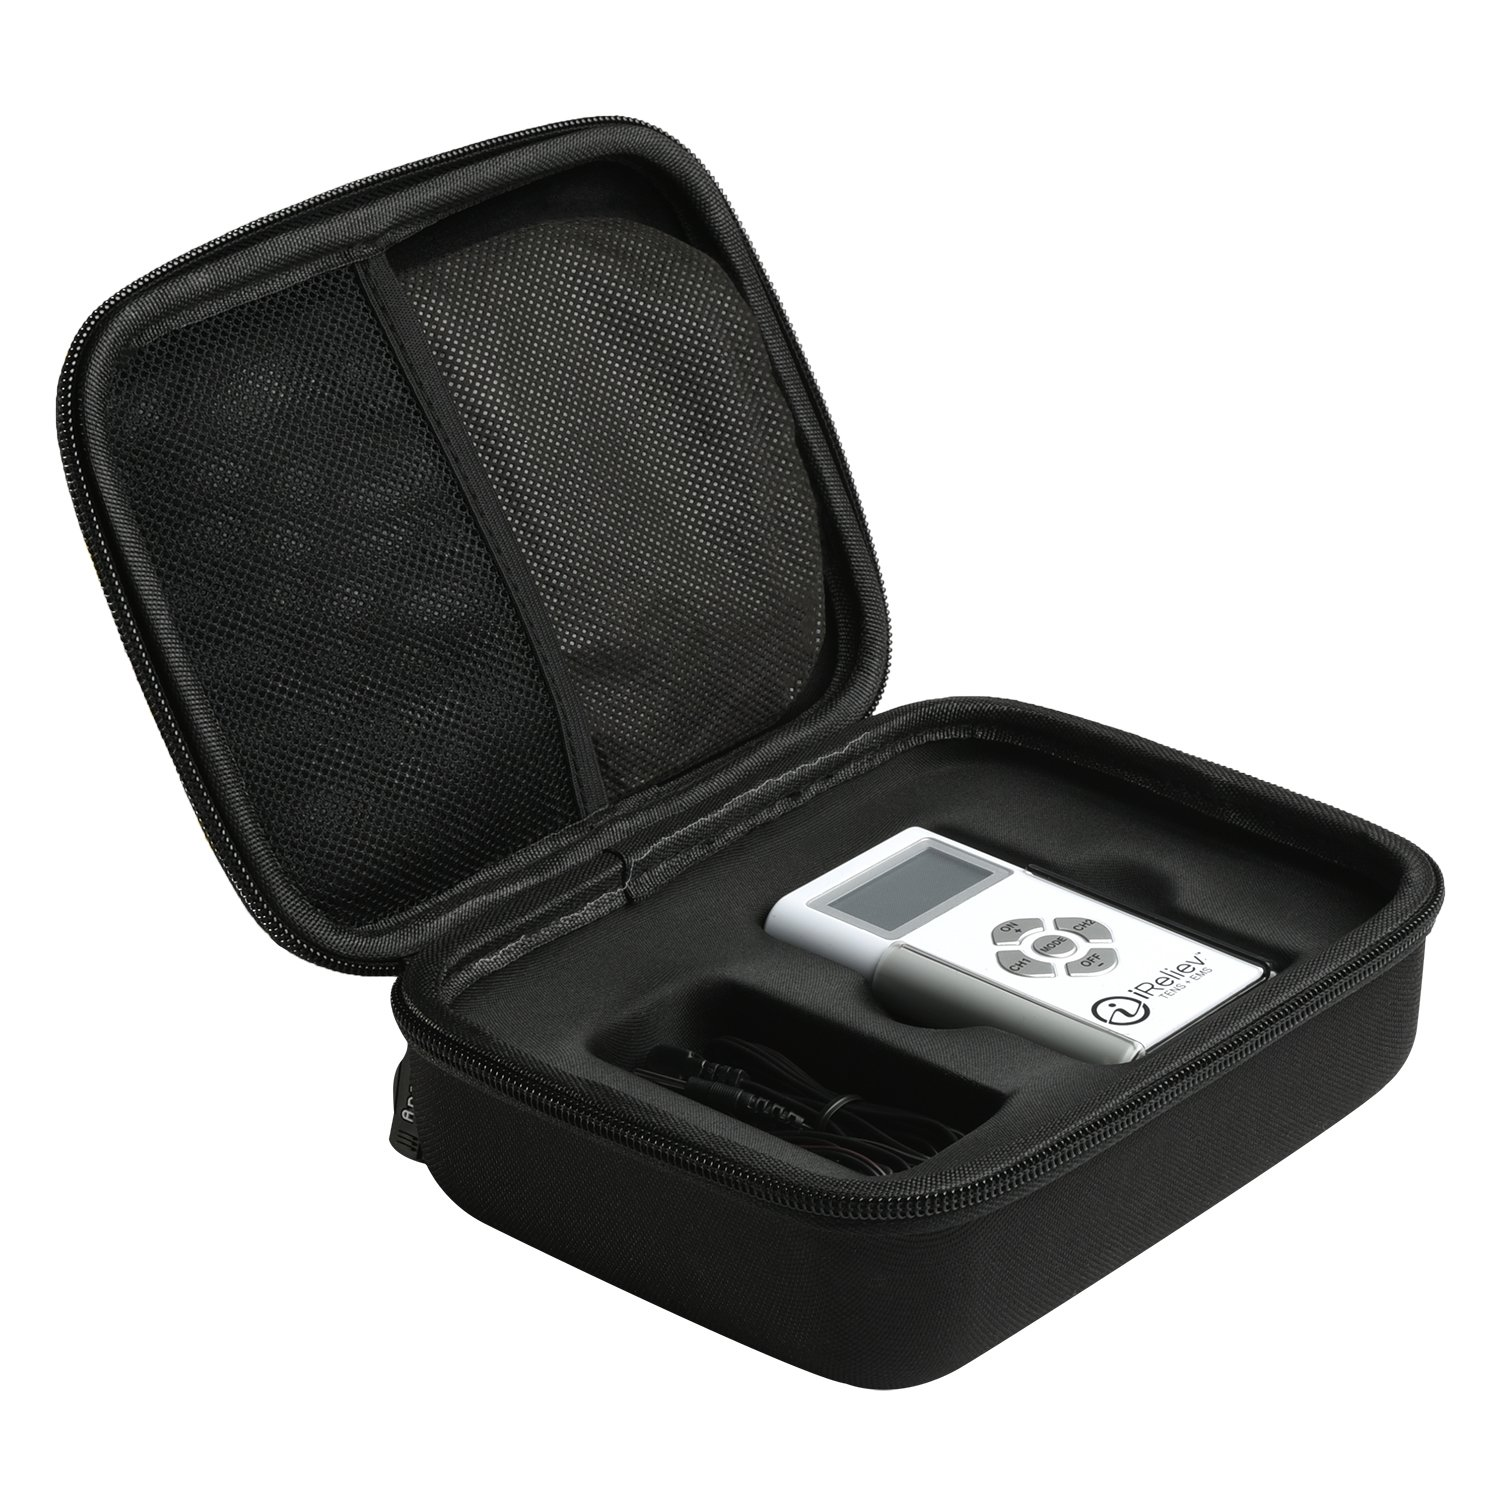 Hard Travel Carrying Case for iReliev TENS + EMS Combination Unit Muscle Stimulator by Aproca